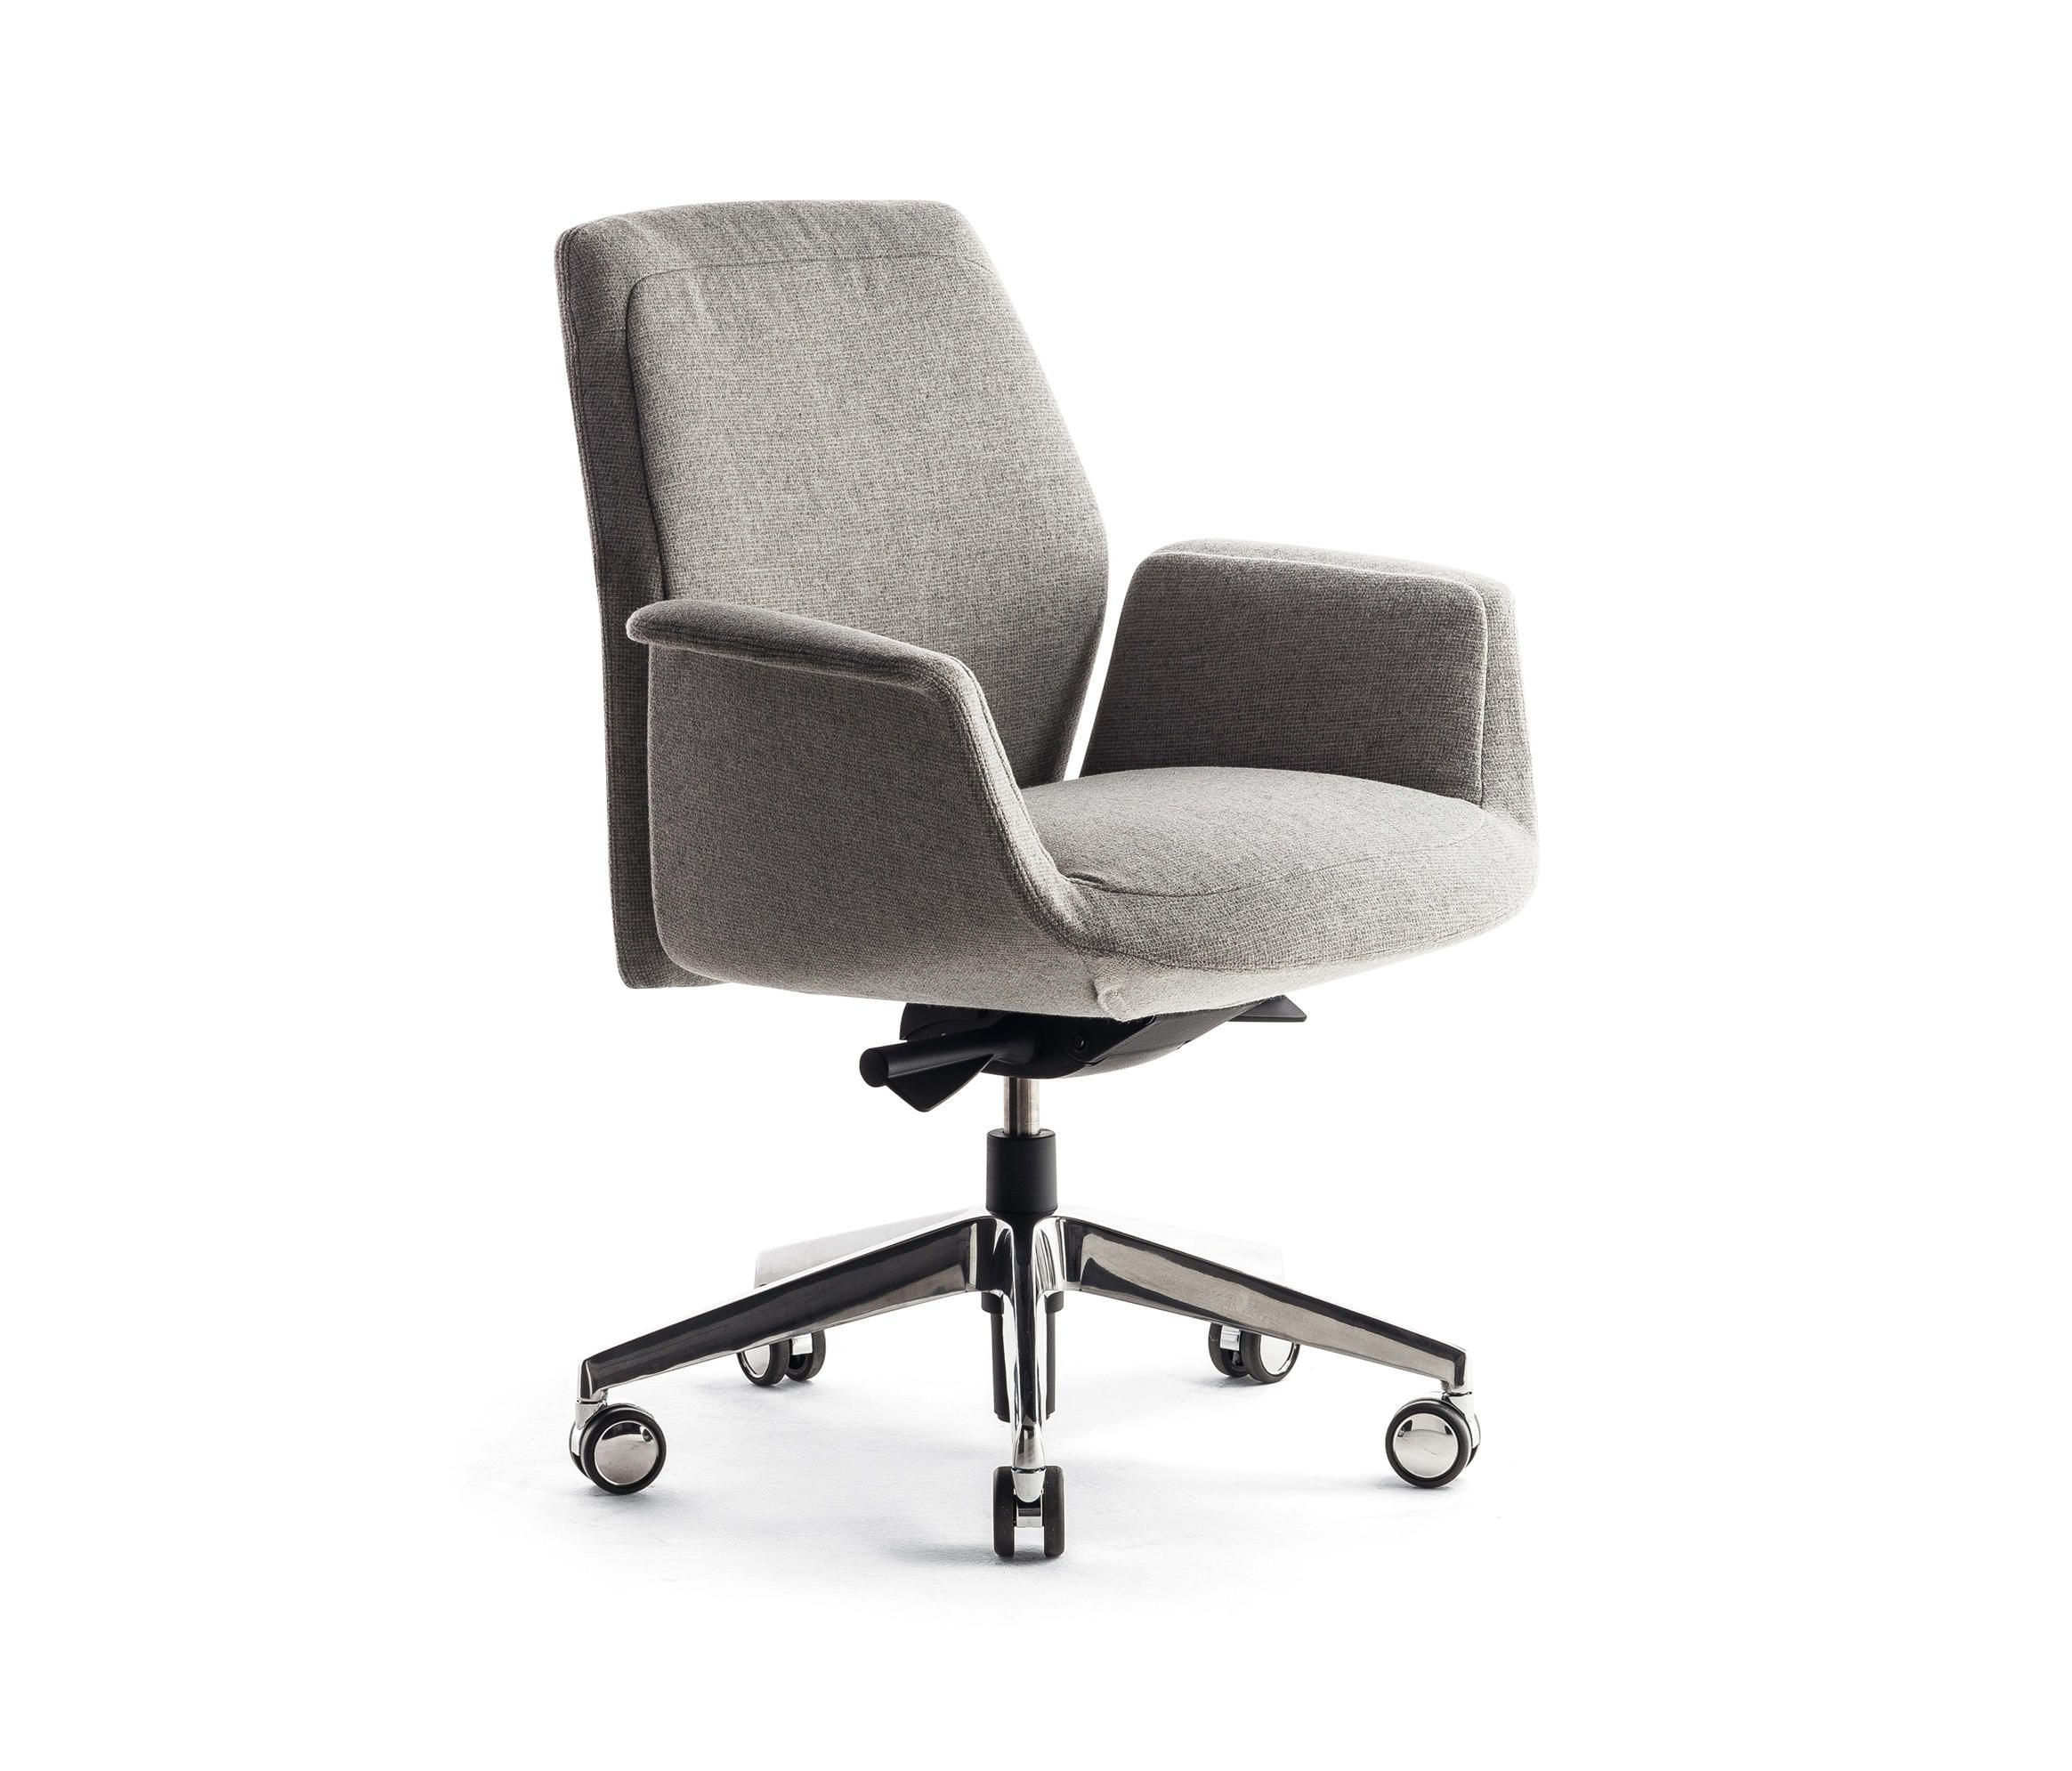 Downtown Swivel Meeting Designer Chairs From Poltrona Frau